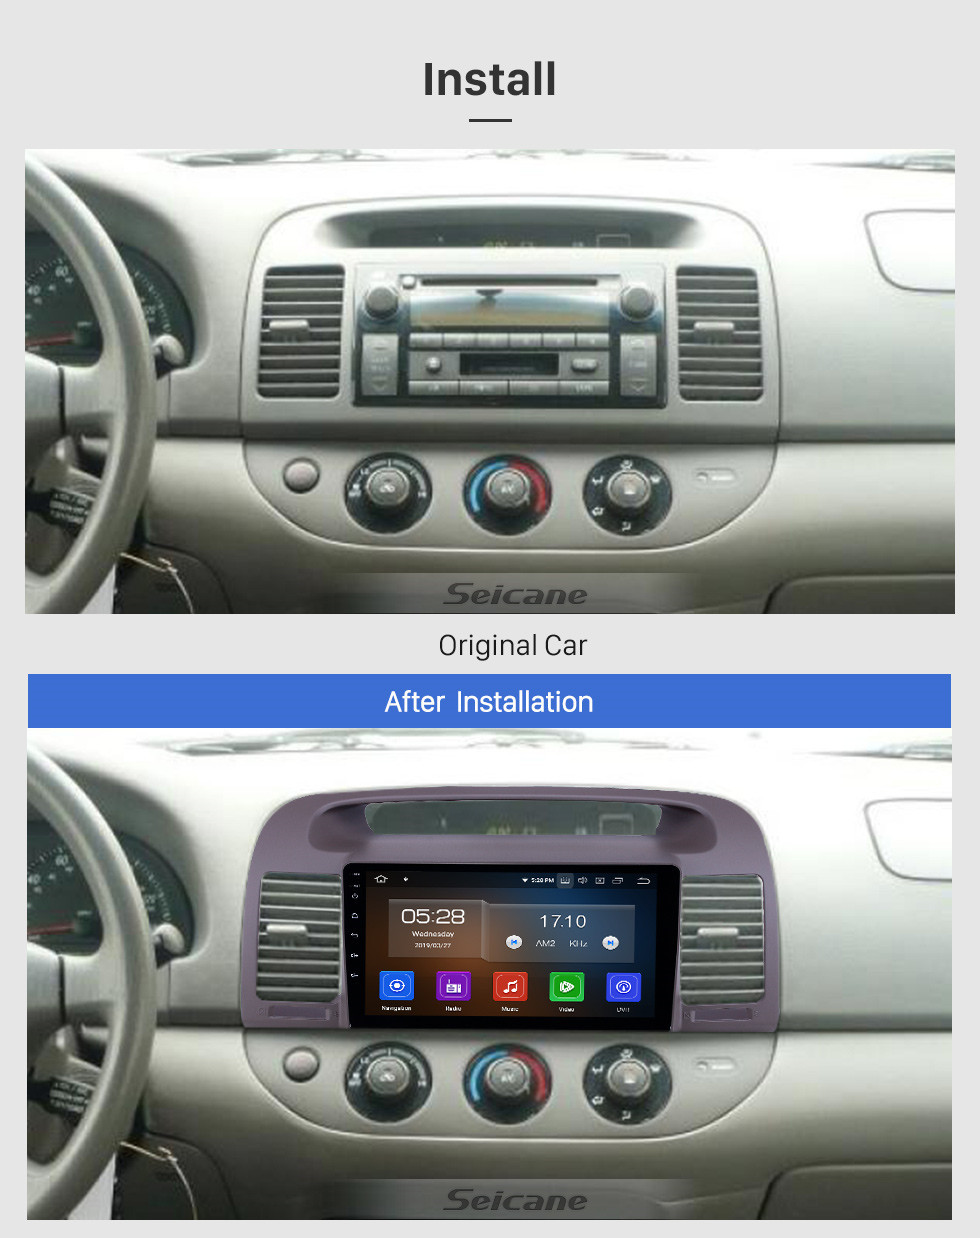 Seicane Android 10.0 9 inch GPS Navigation Radio for 2000-2003 Toyota Camry with HD Touchscreen Carplay Bluetooth support Digital TV